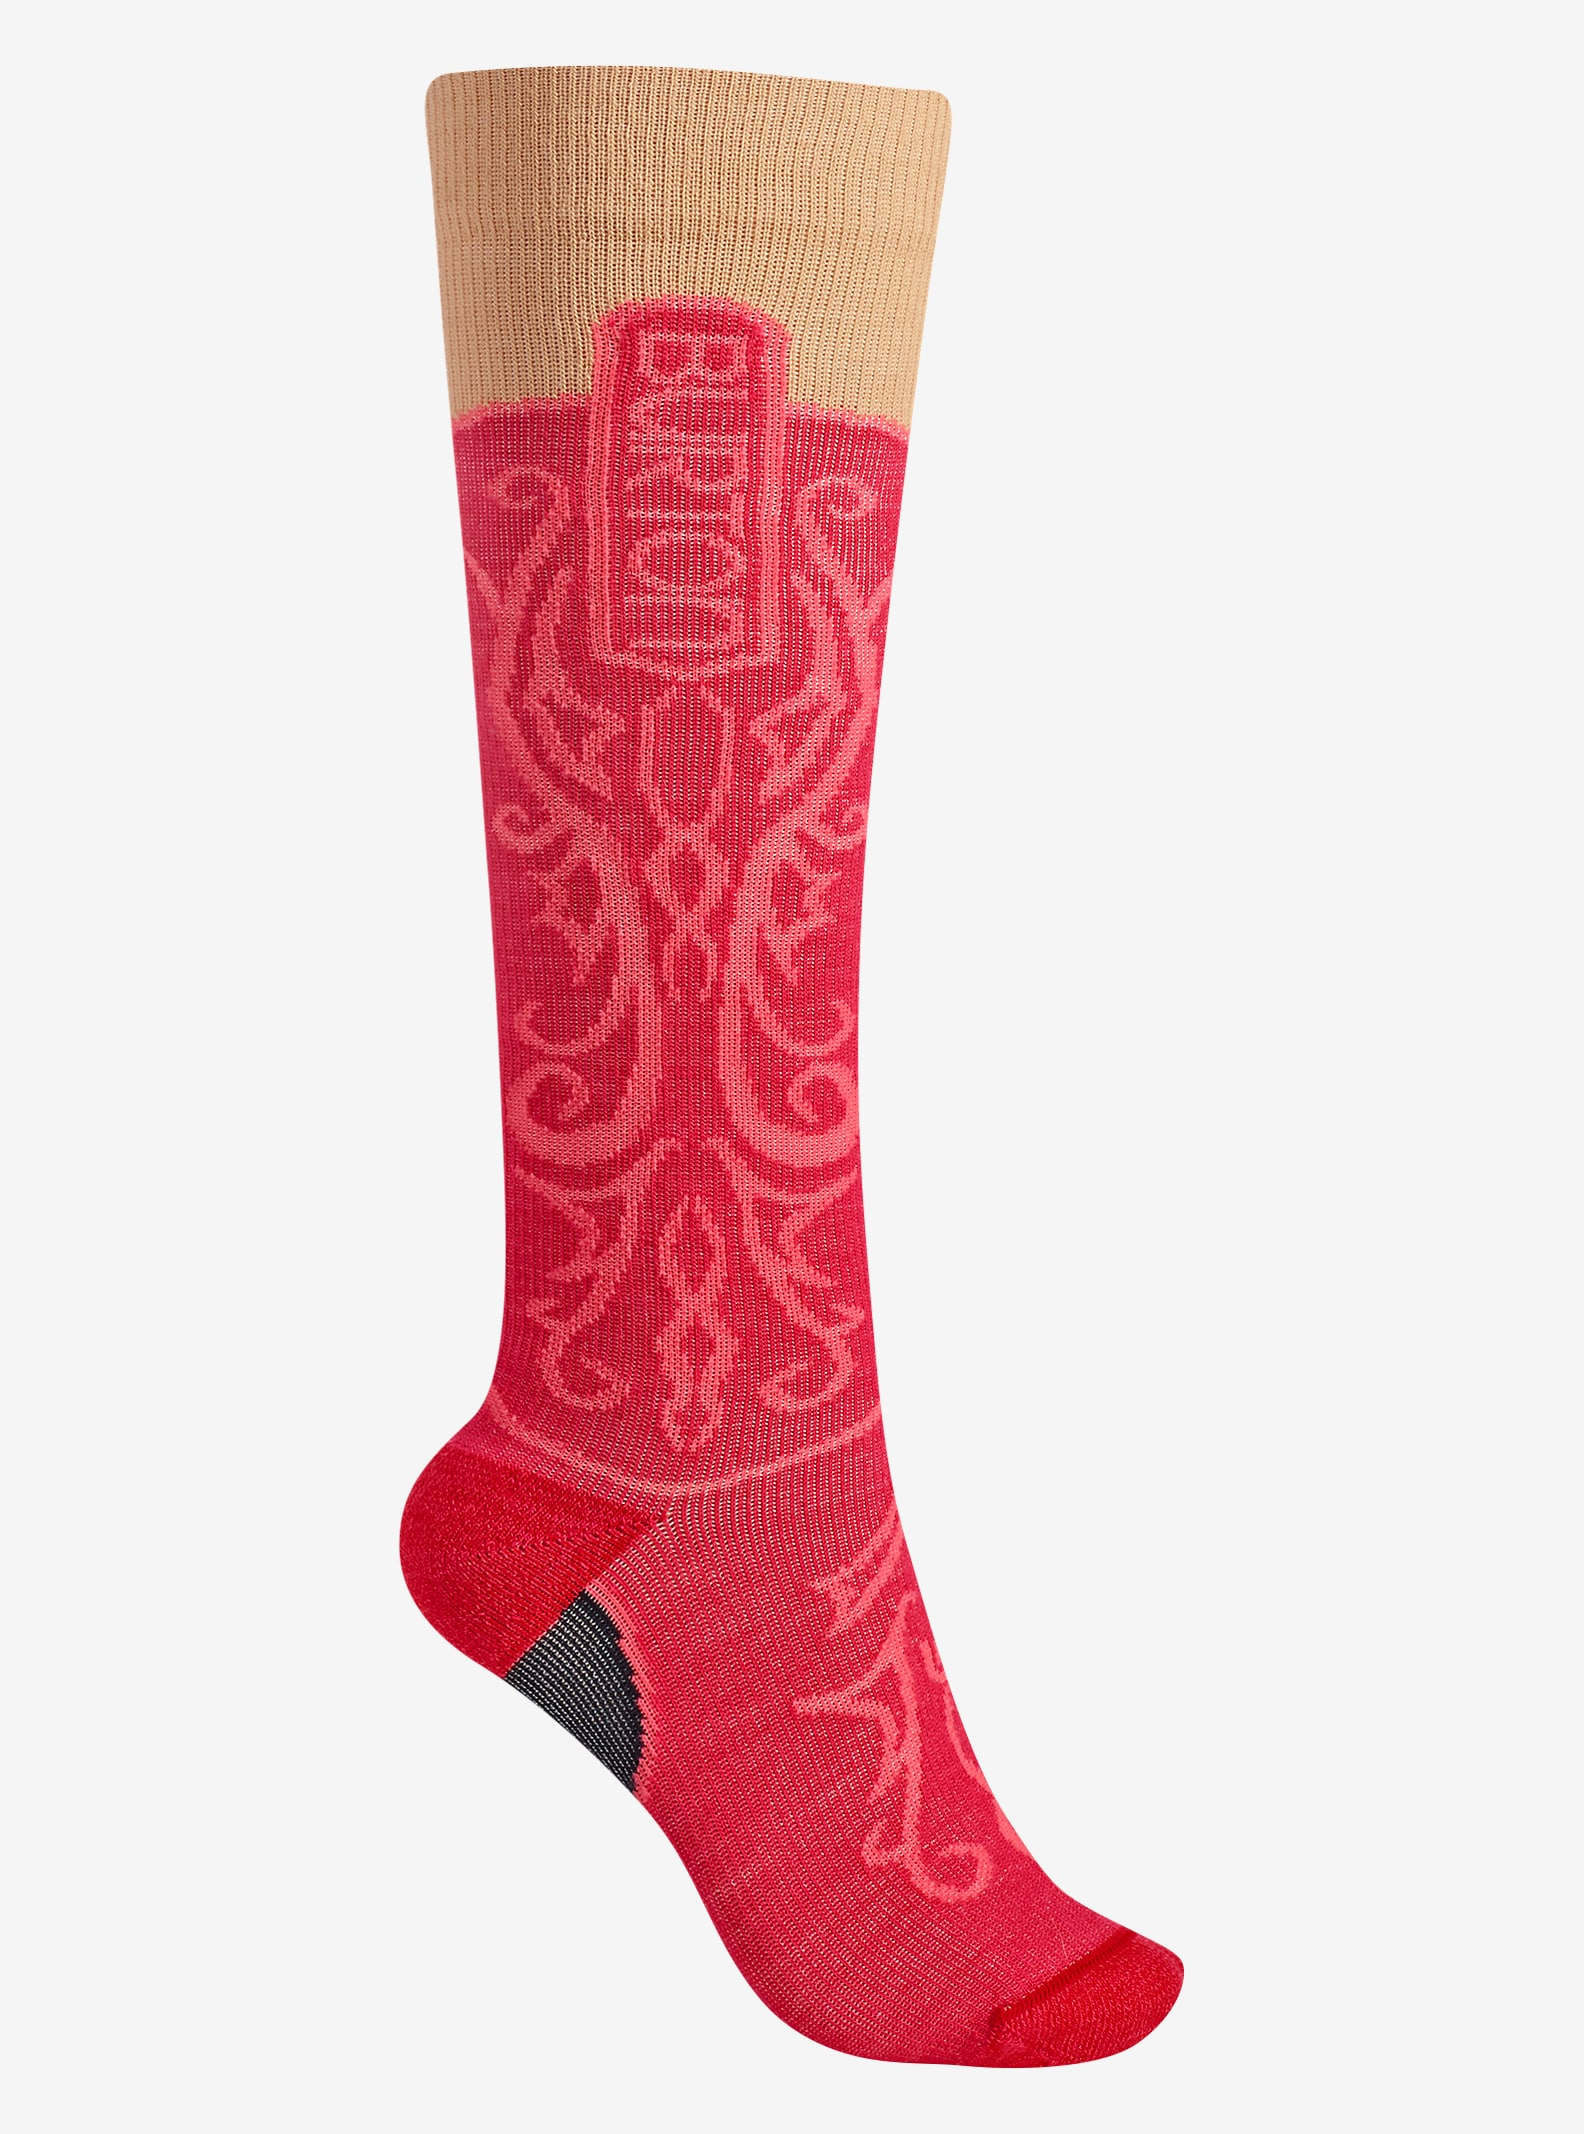 Burton Women's Super Party Sock shown in Cowgirl